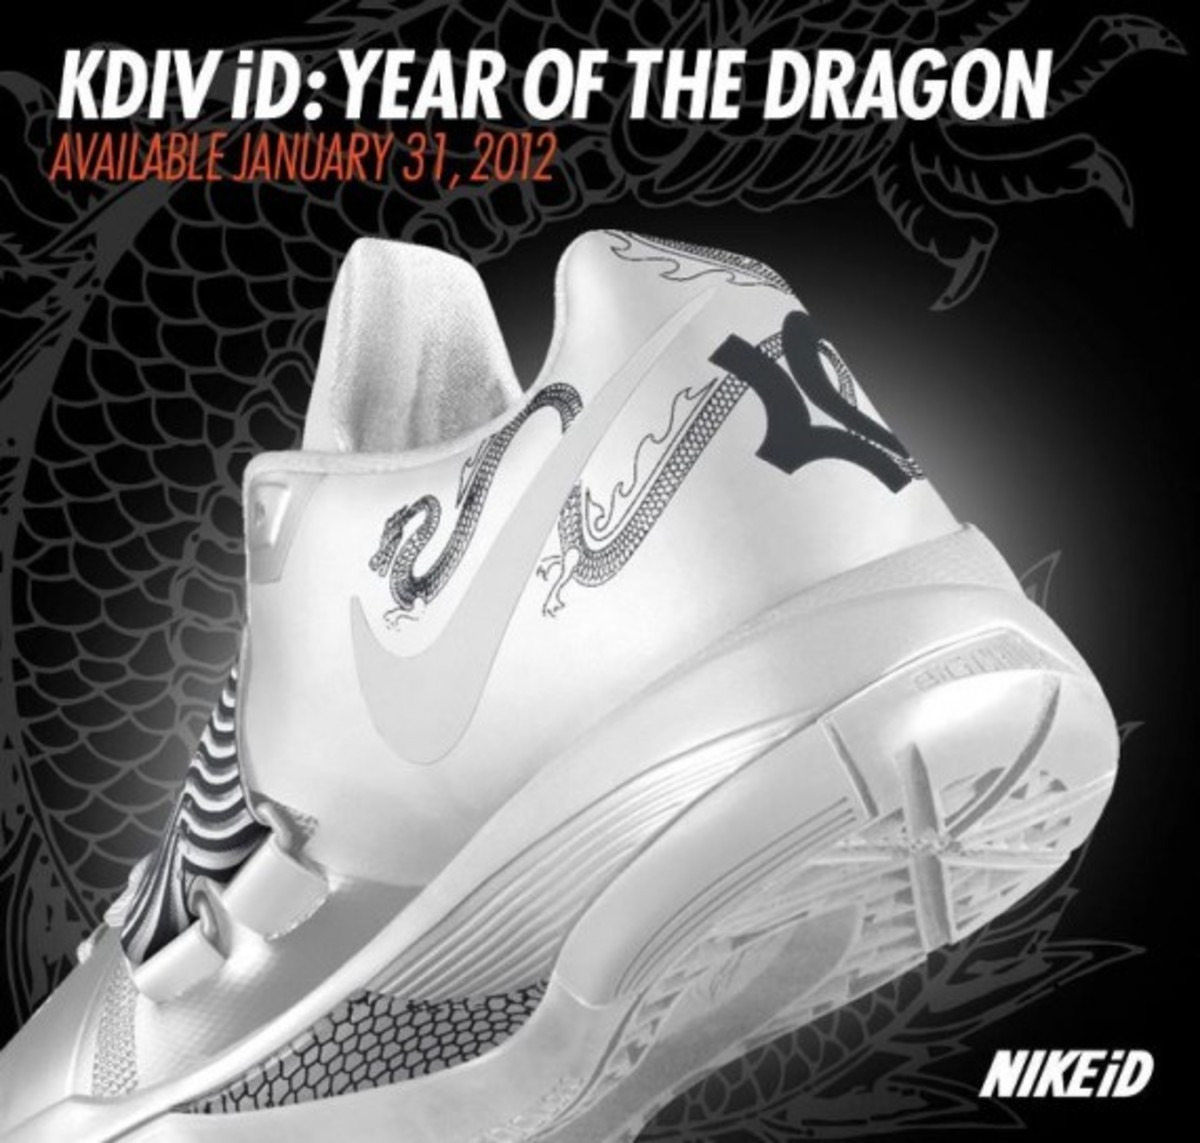 nikeid-zoom-kd-iv-dragon-03